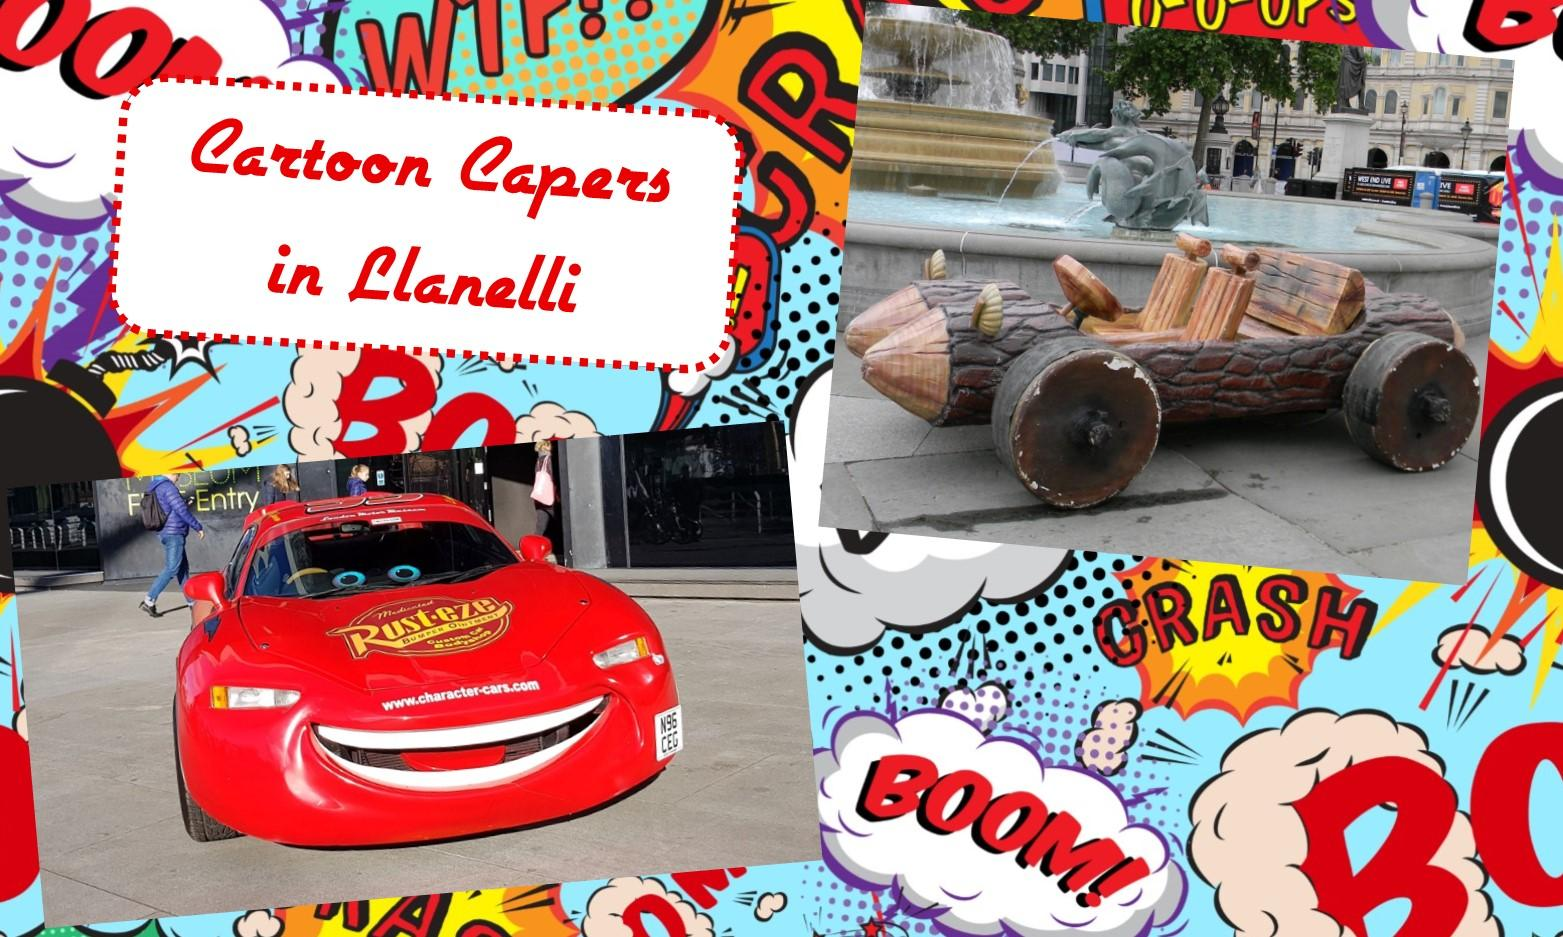 Cartoon Capers in Llanelli